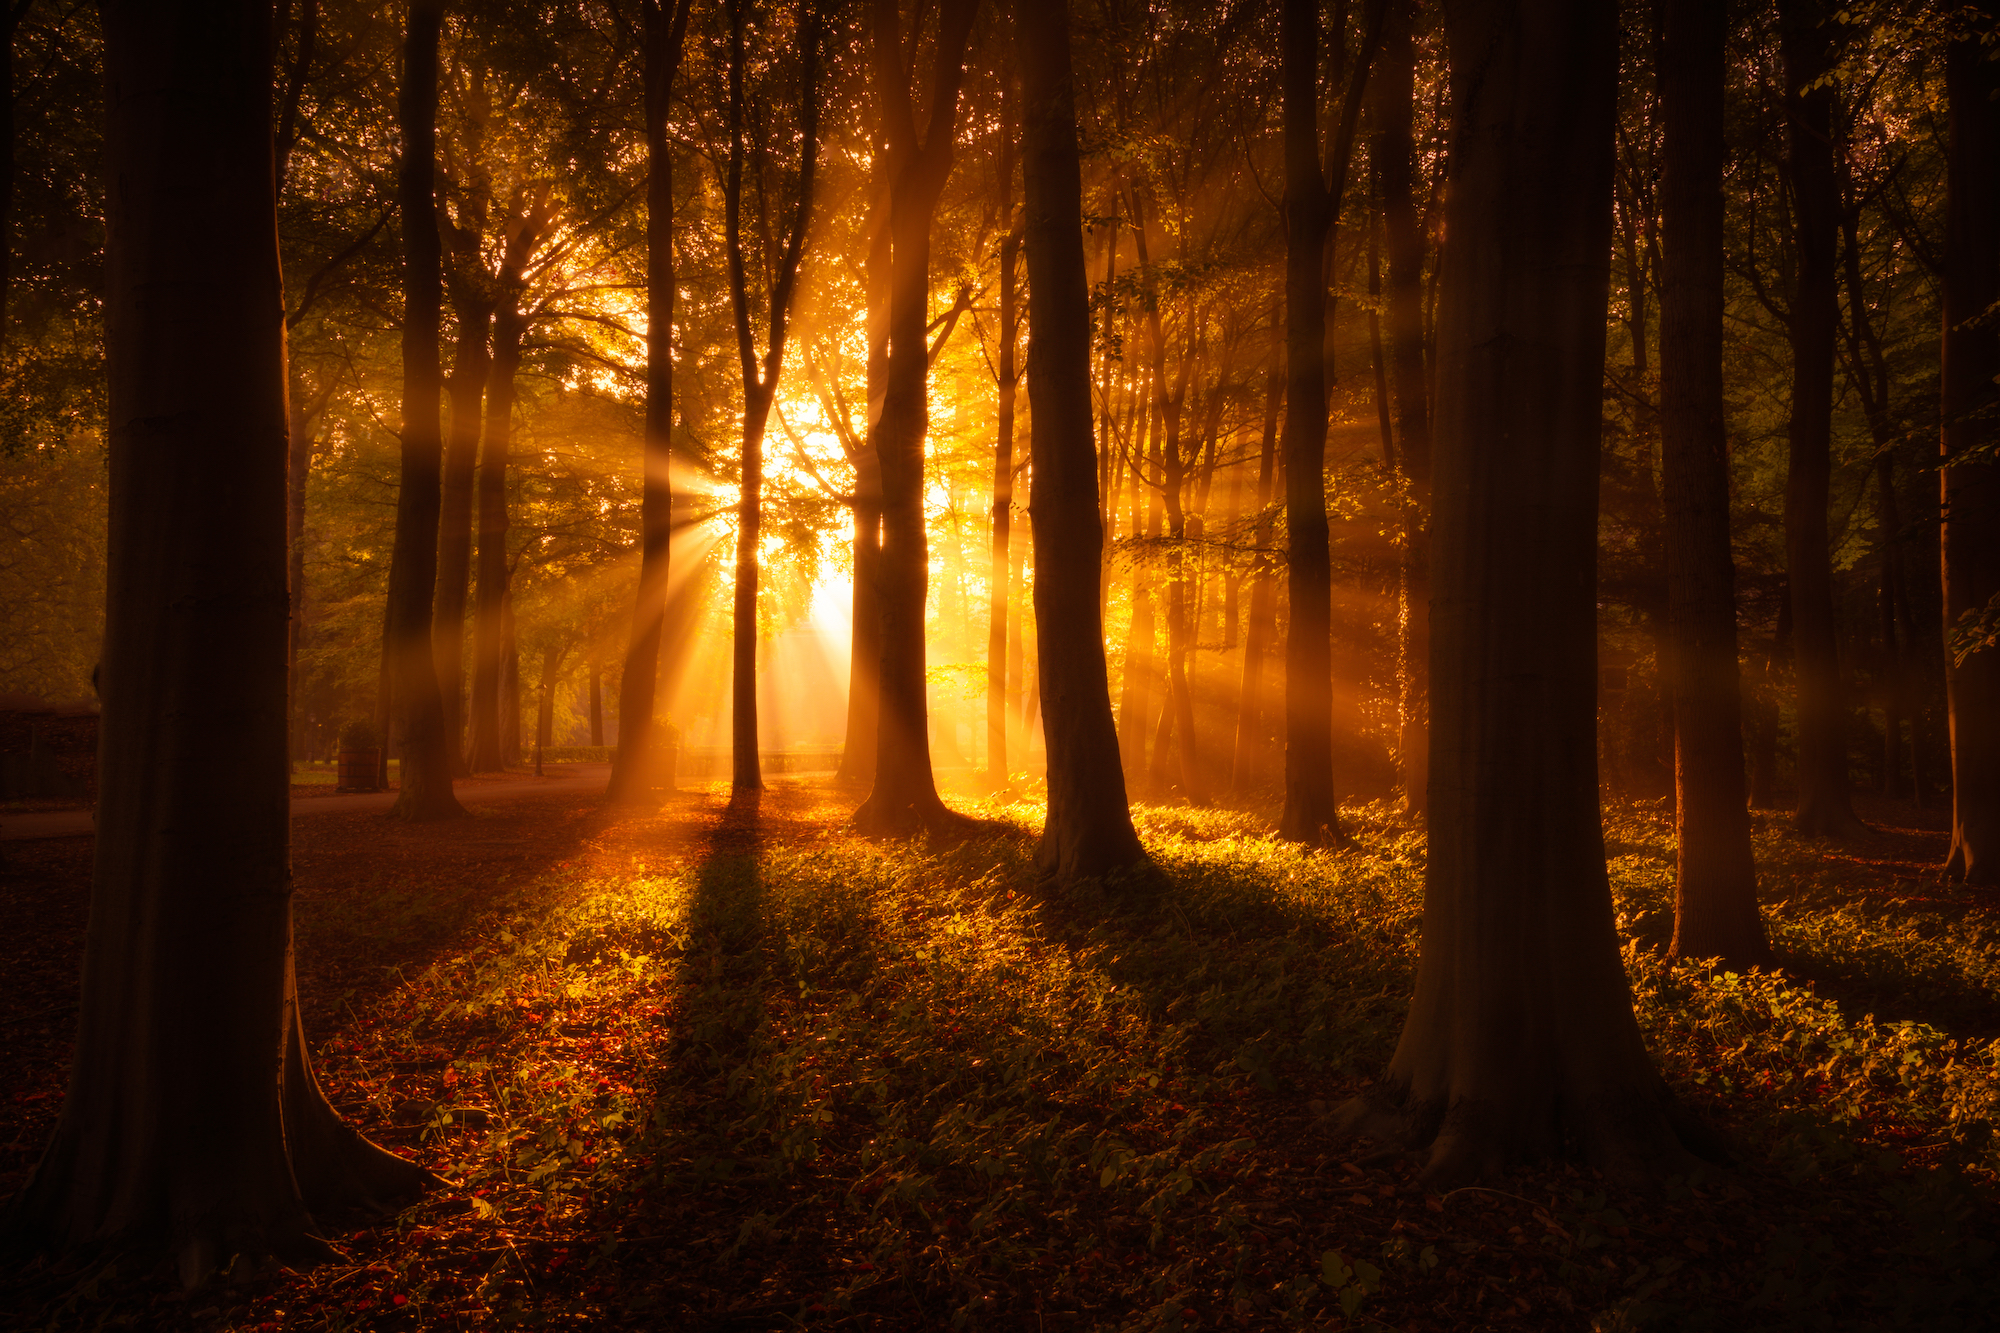 Golden hour in the forest with the sun shining through the trees